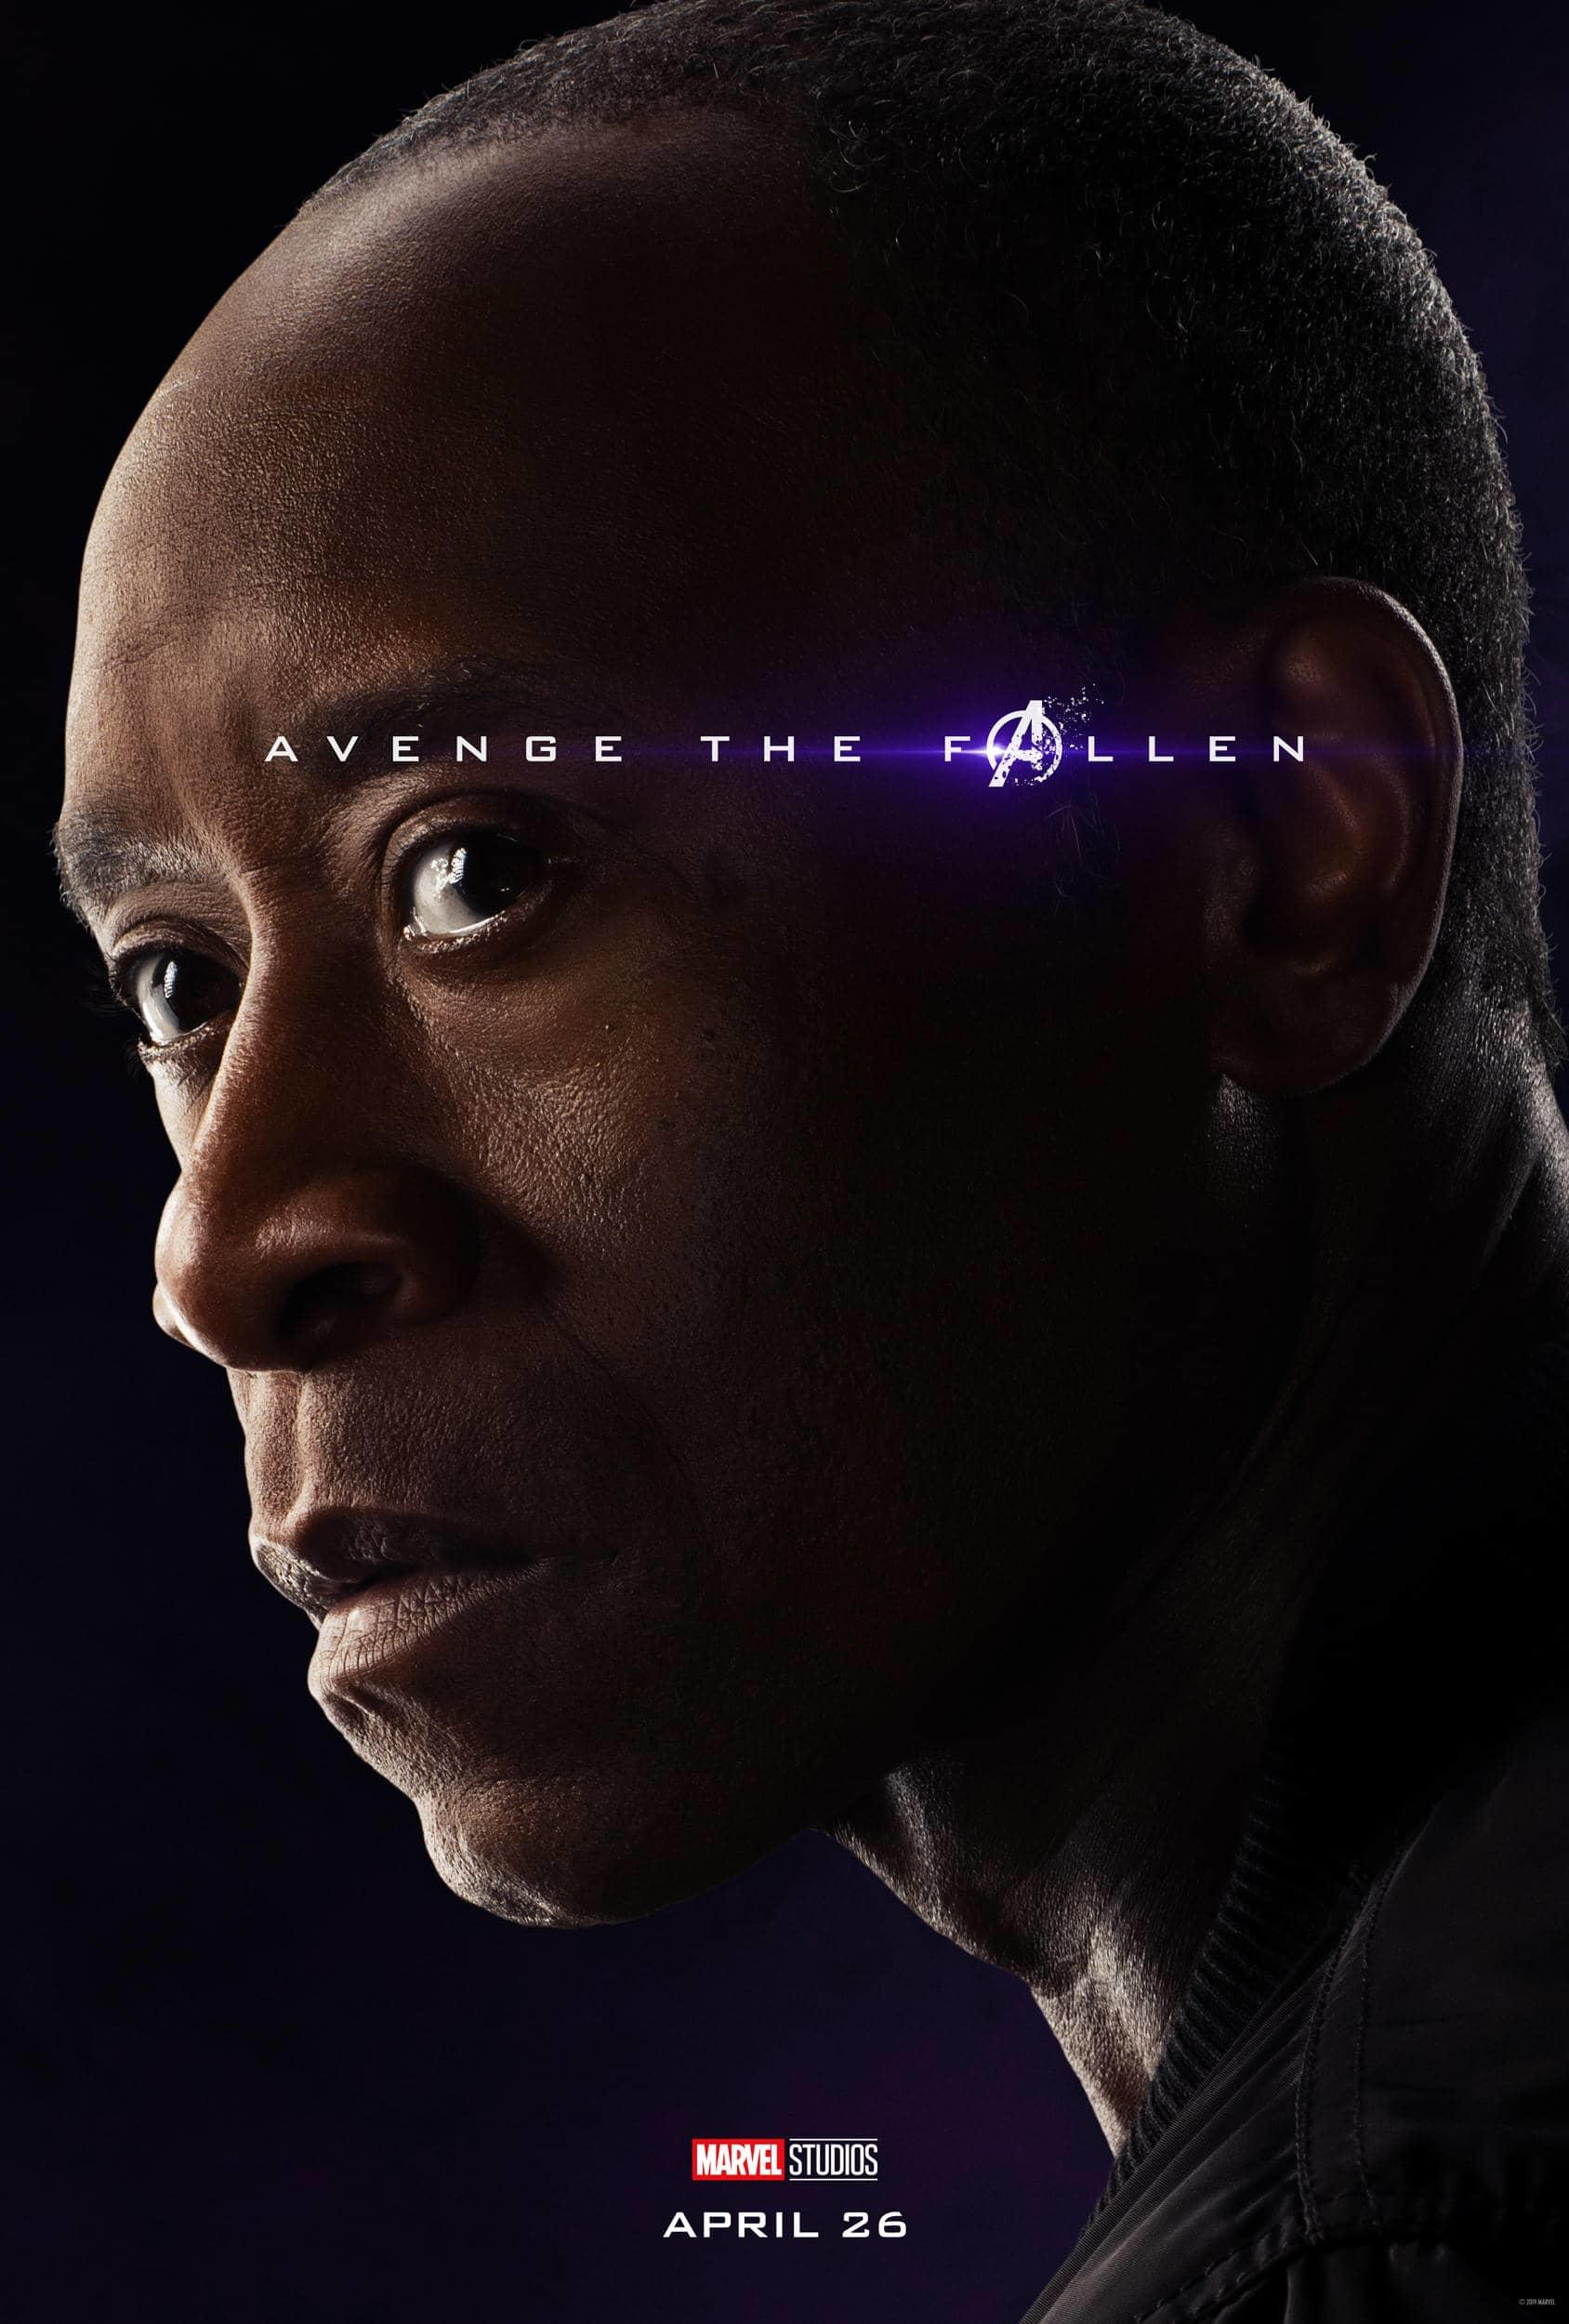 Marvel Studios' Avengers: Endgame Movie Cast War Machine (James Rhodes) Don Cheadle